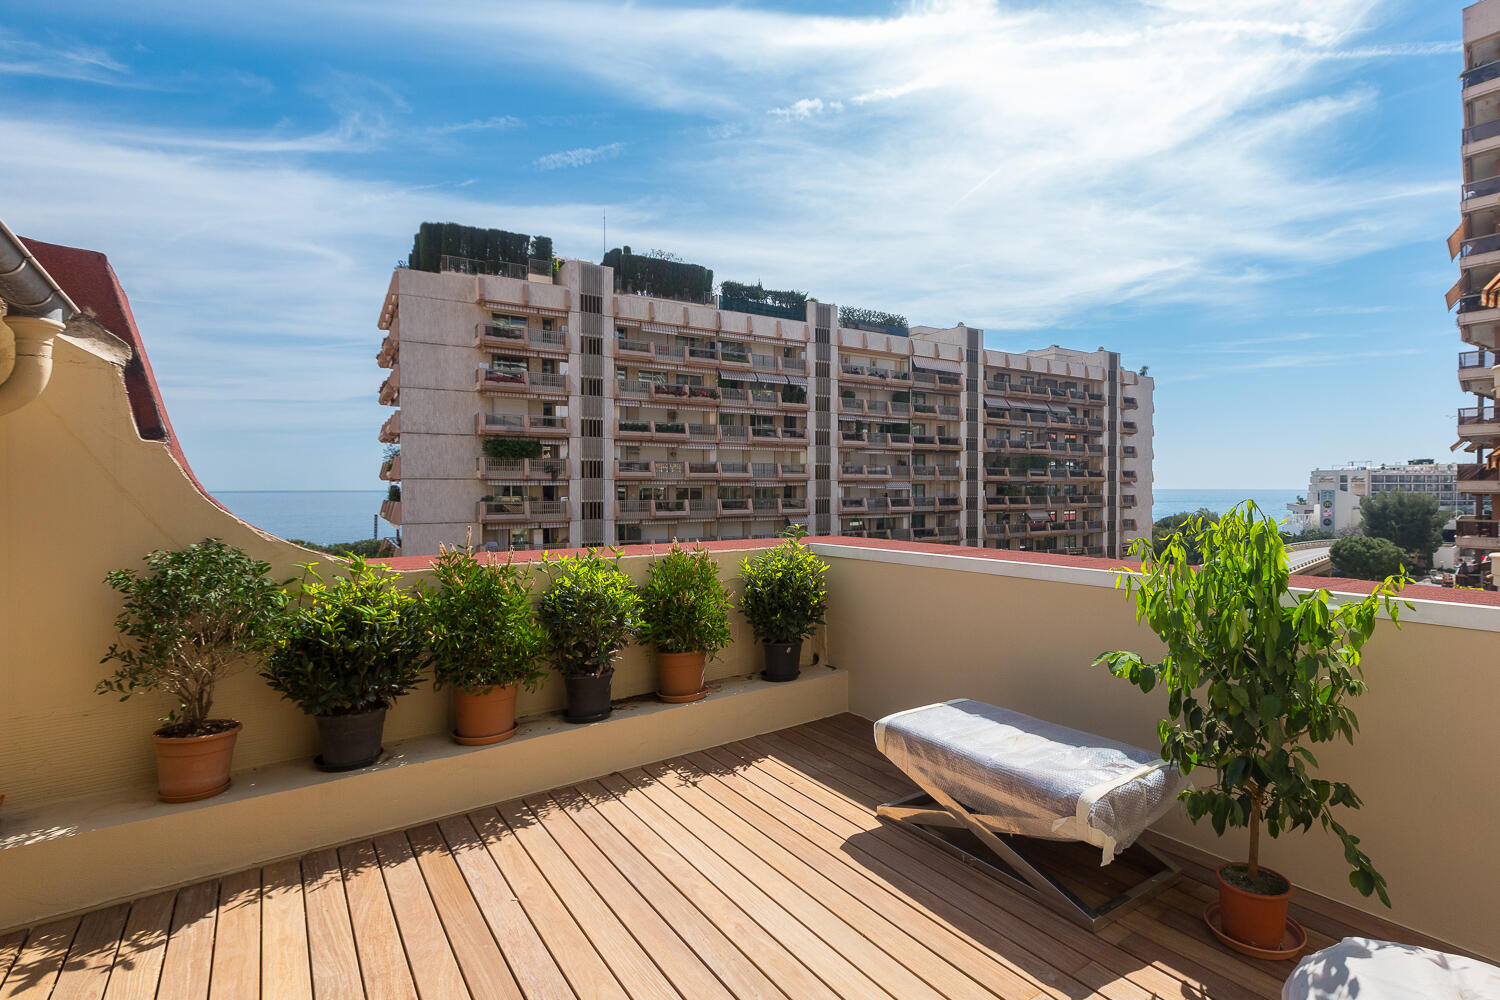 How to become a resident of Monaco and what are the advantages?